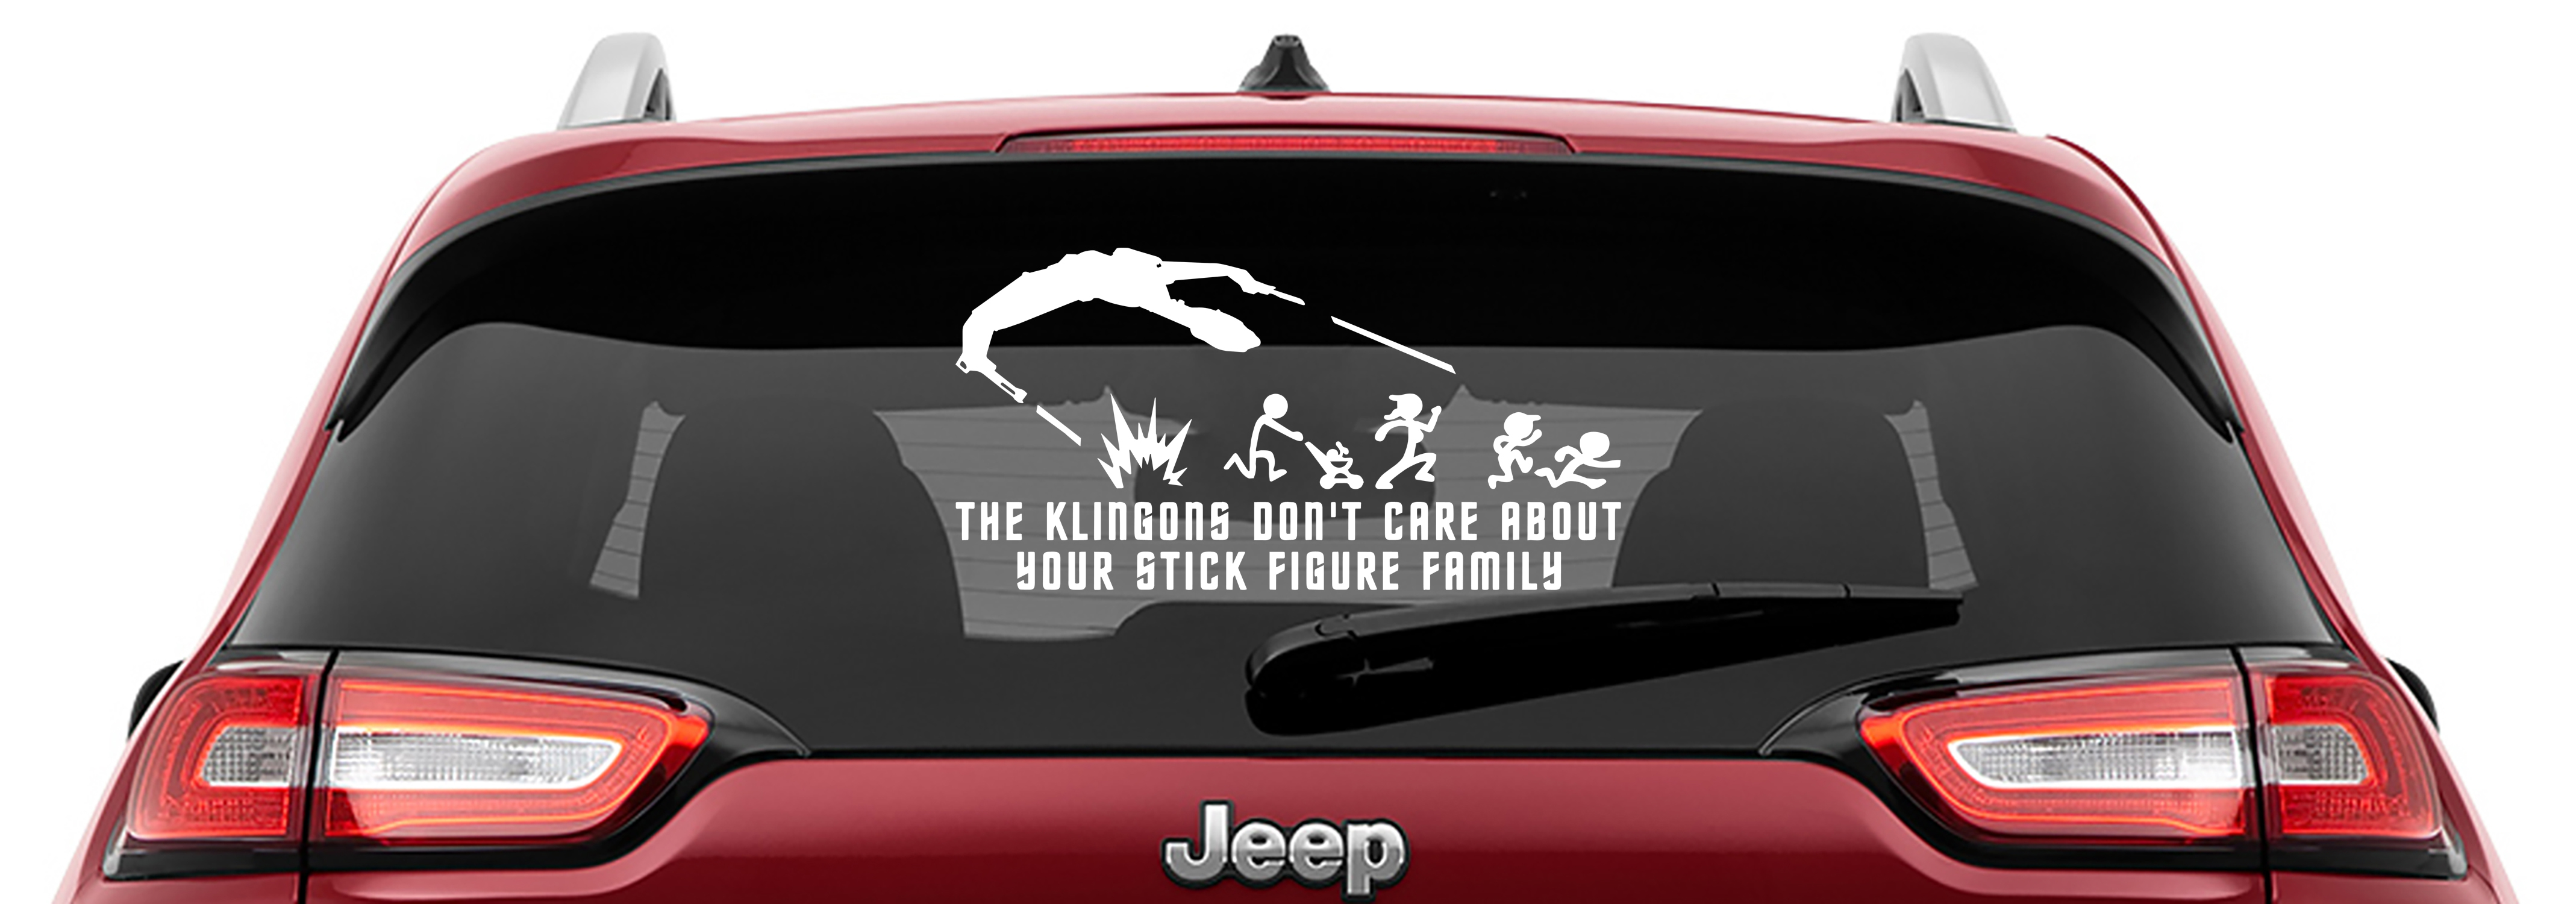 The Klingons Don't Care About Your Stick Figure Family Vinyl Decal